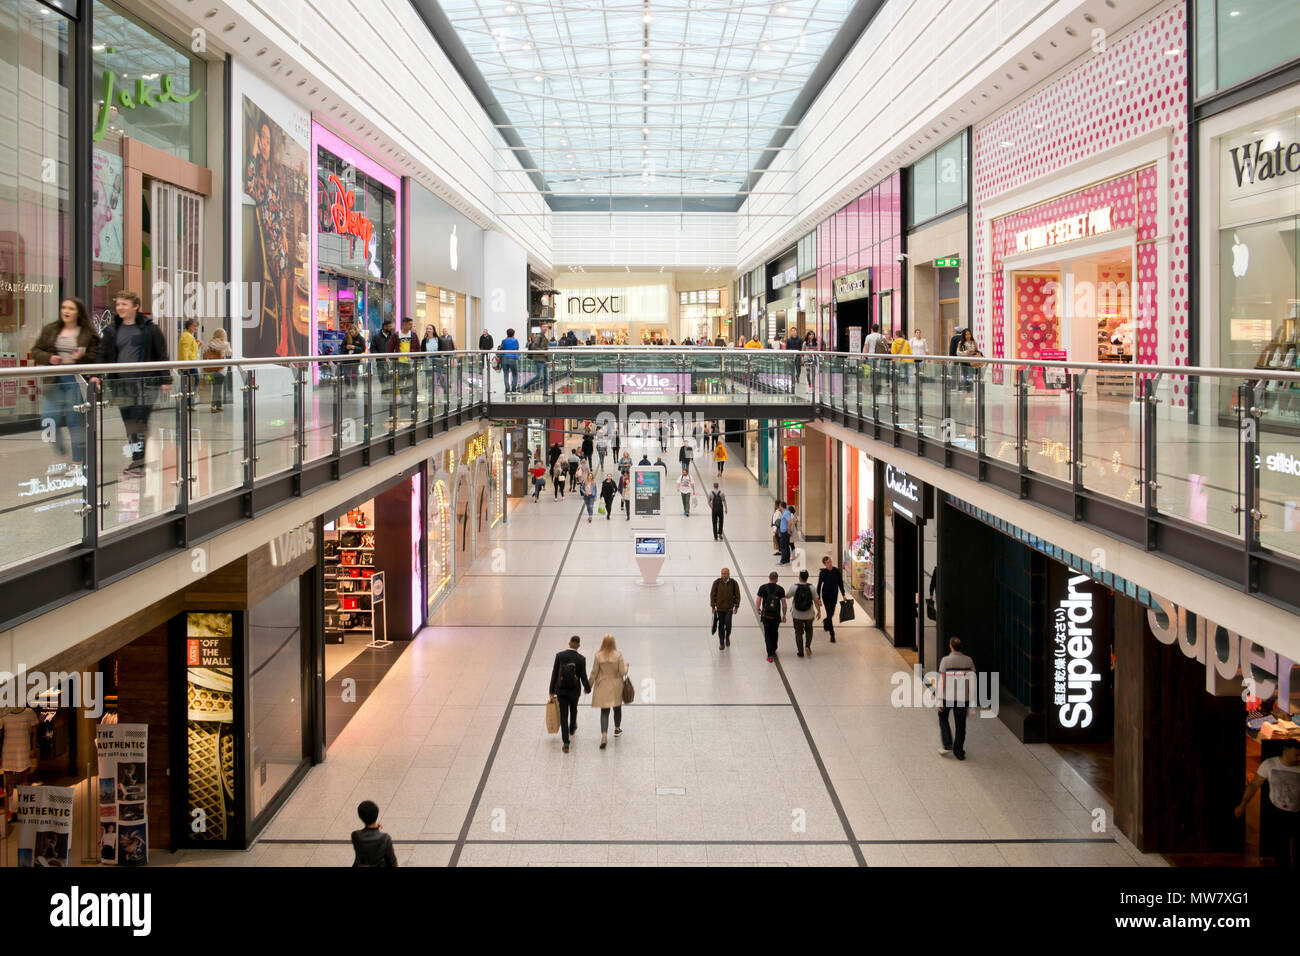 Internal view of Manchester Arndale. - Stock Image